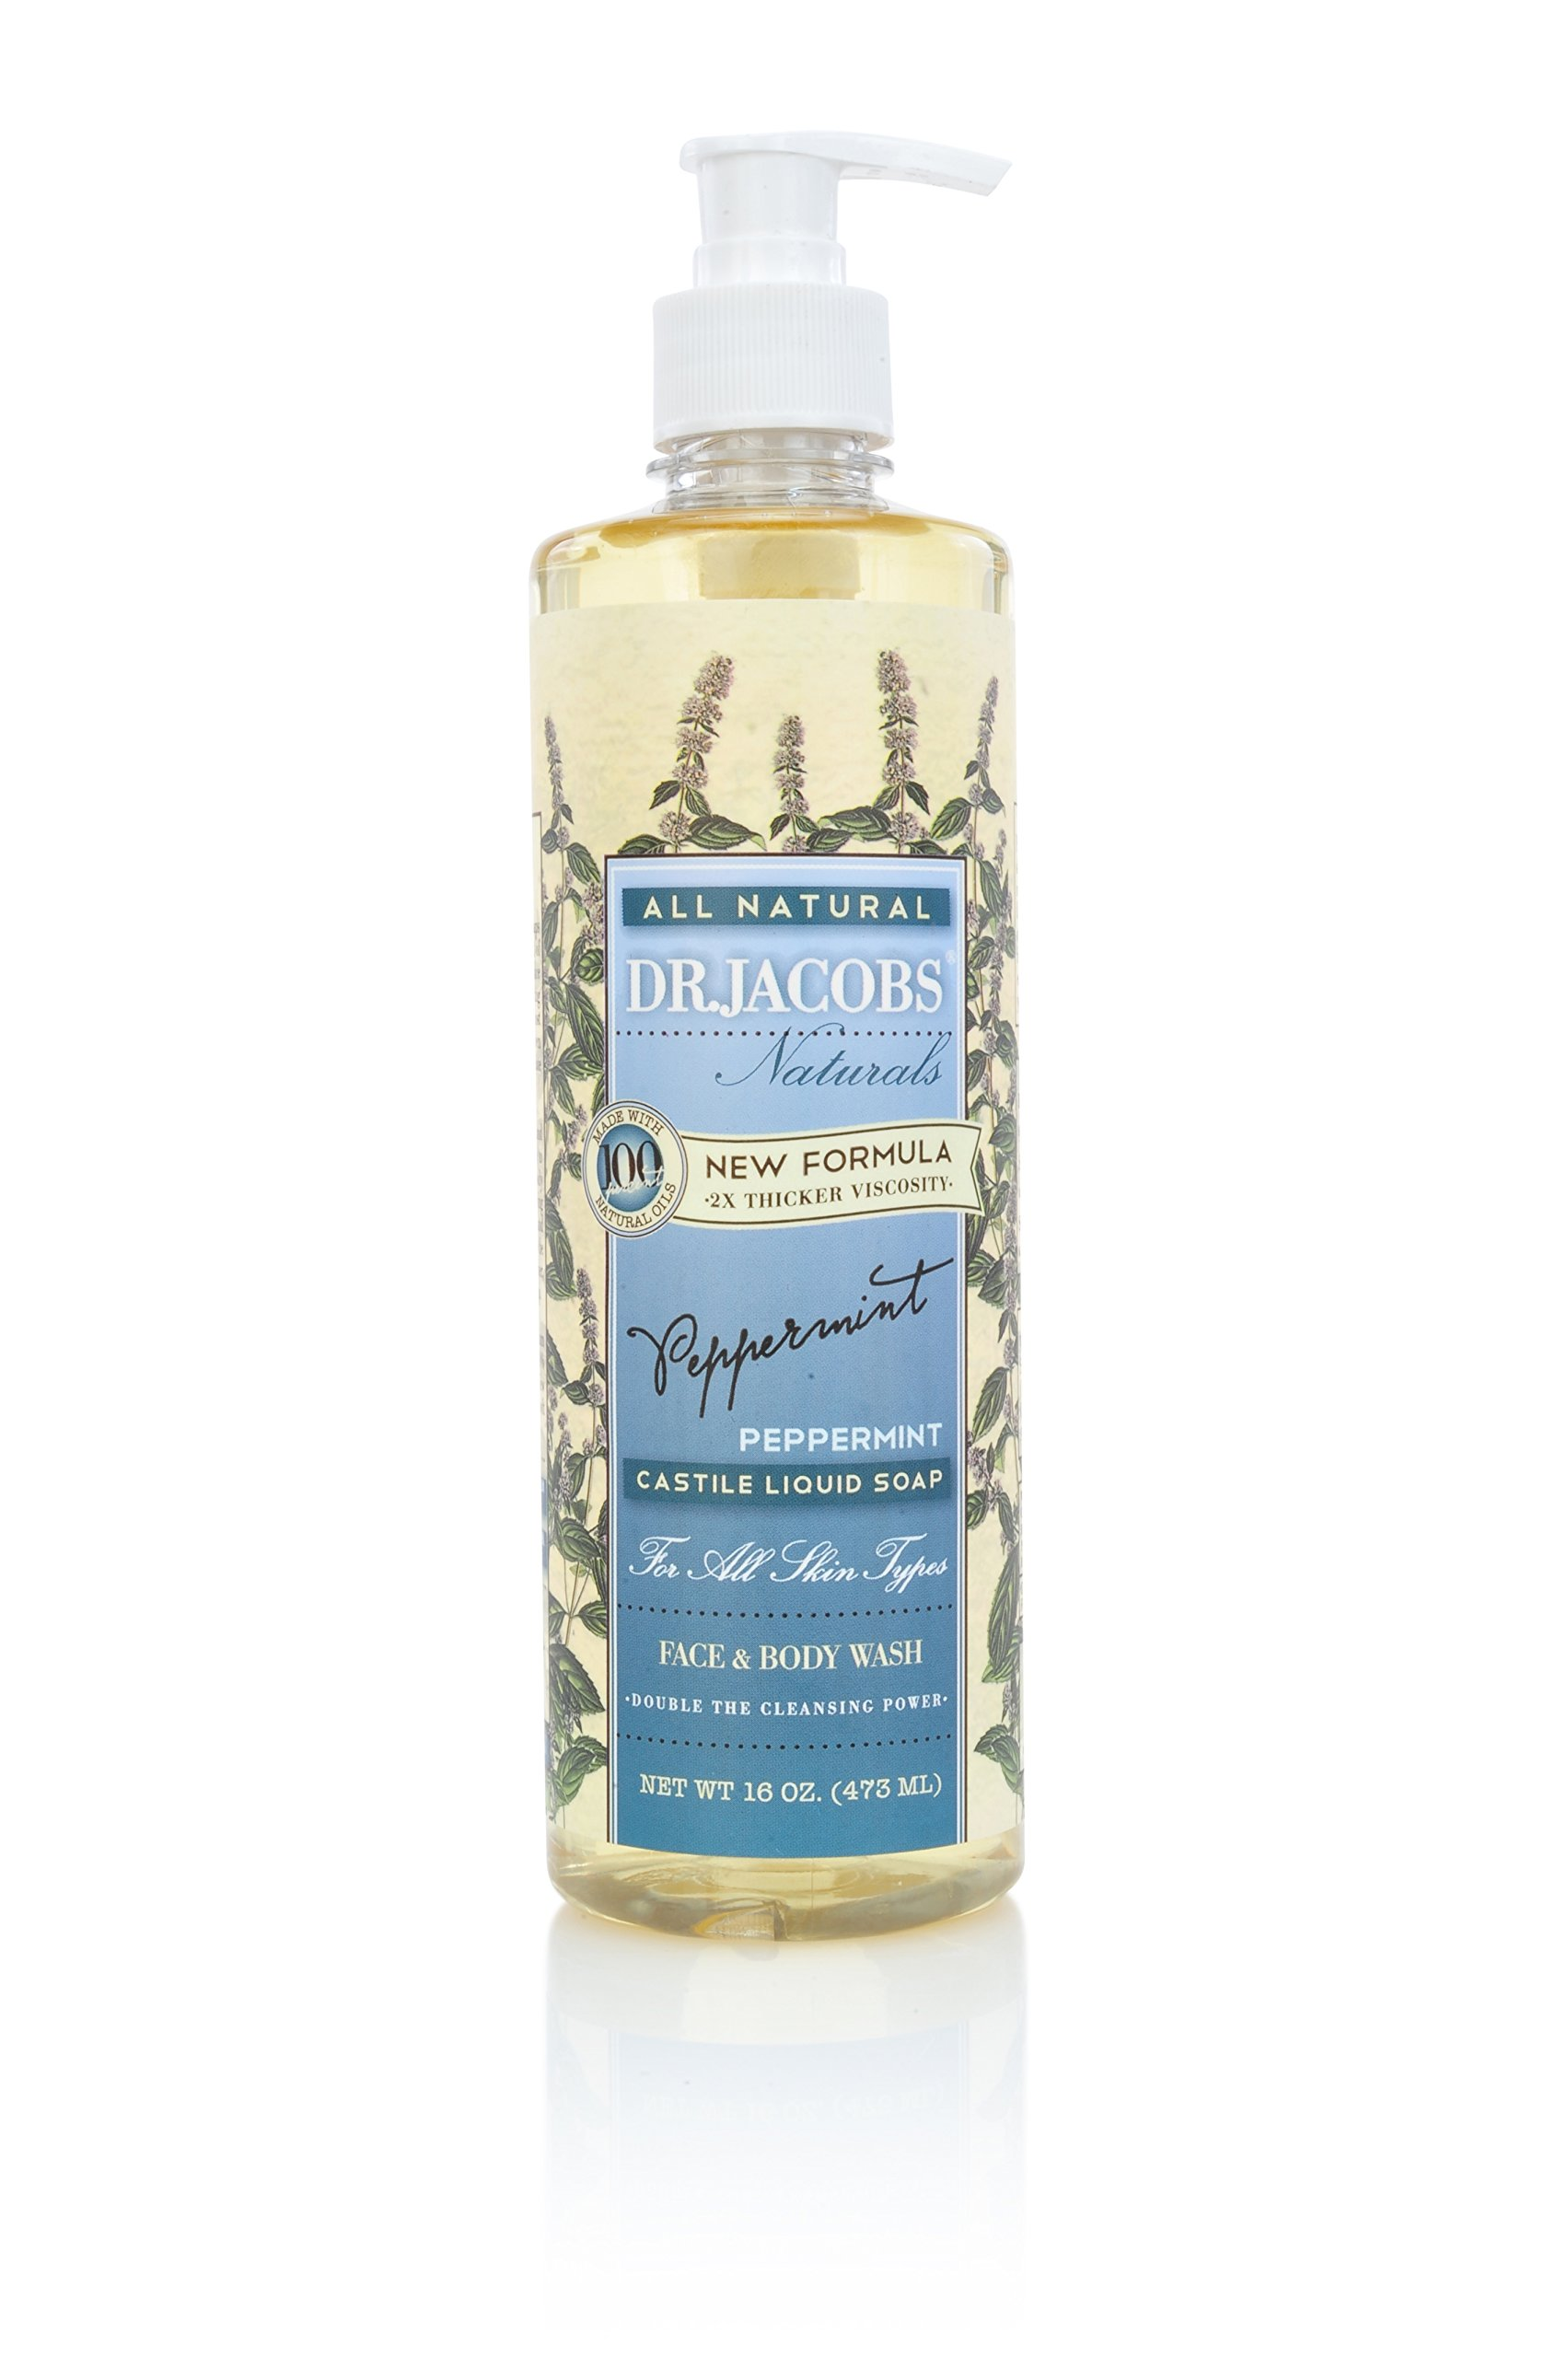 DR.JACOBS NATURALS Pure Castile Liquid Soap - Natural Face and Body Wash 16 oz. (Peppermint)